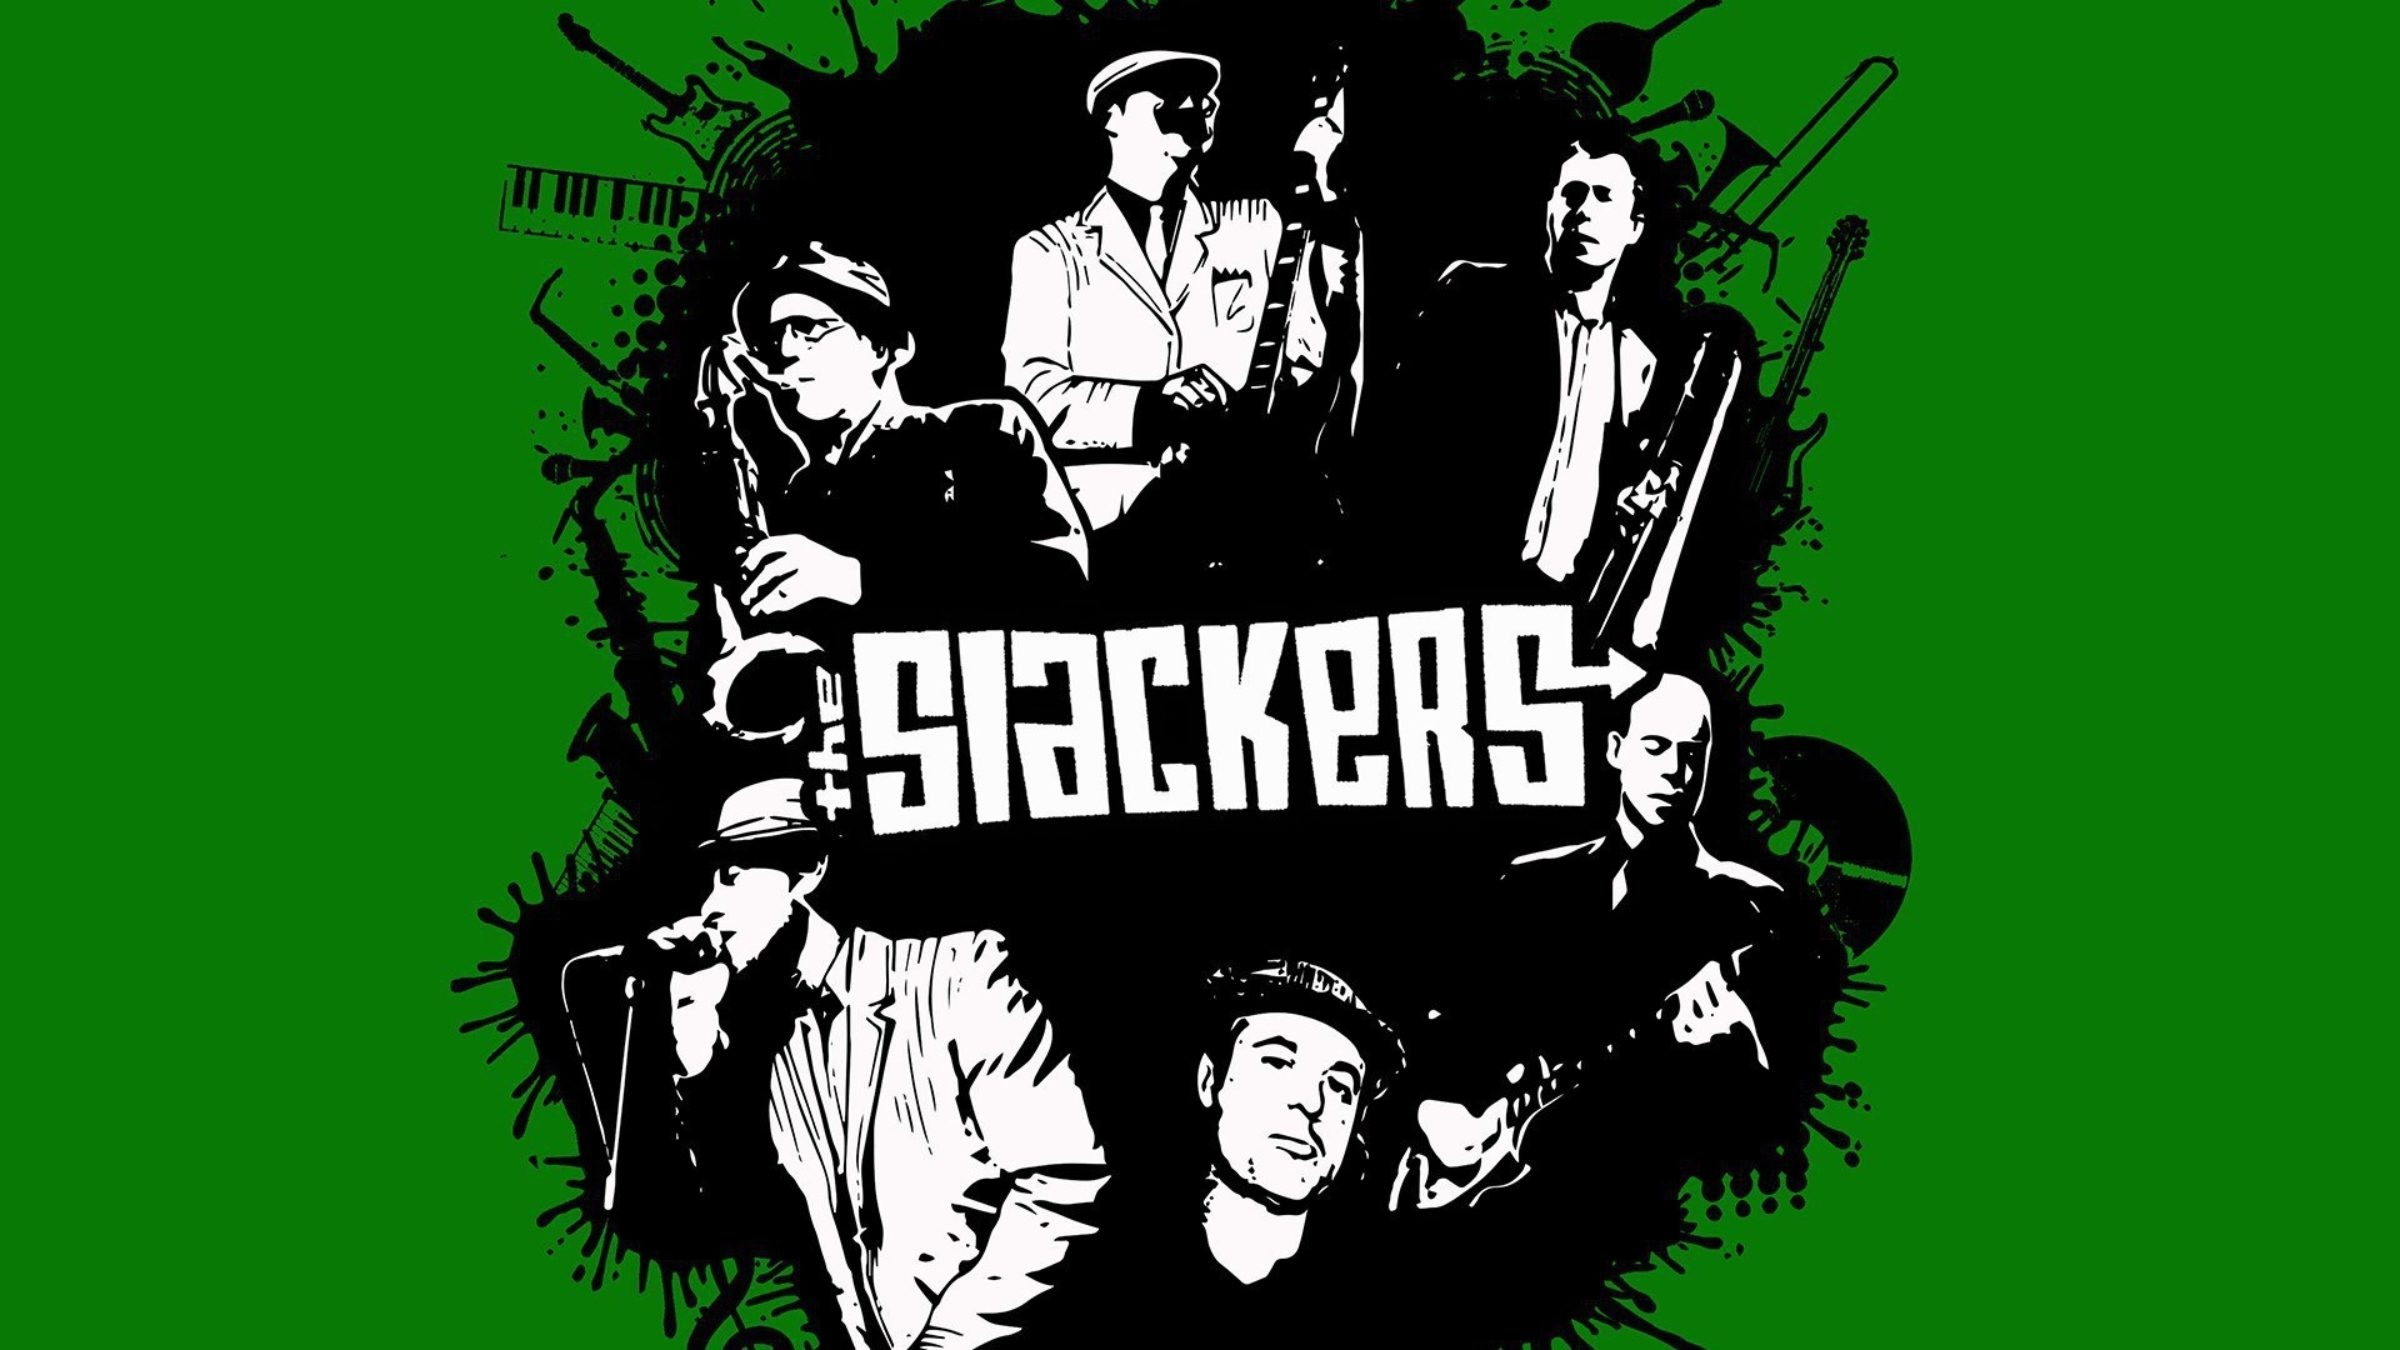 The Slackers 190307 121404 2395 1551957243 35hxe9shkw